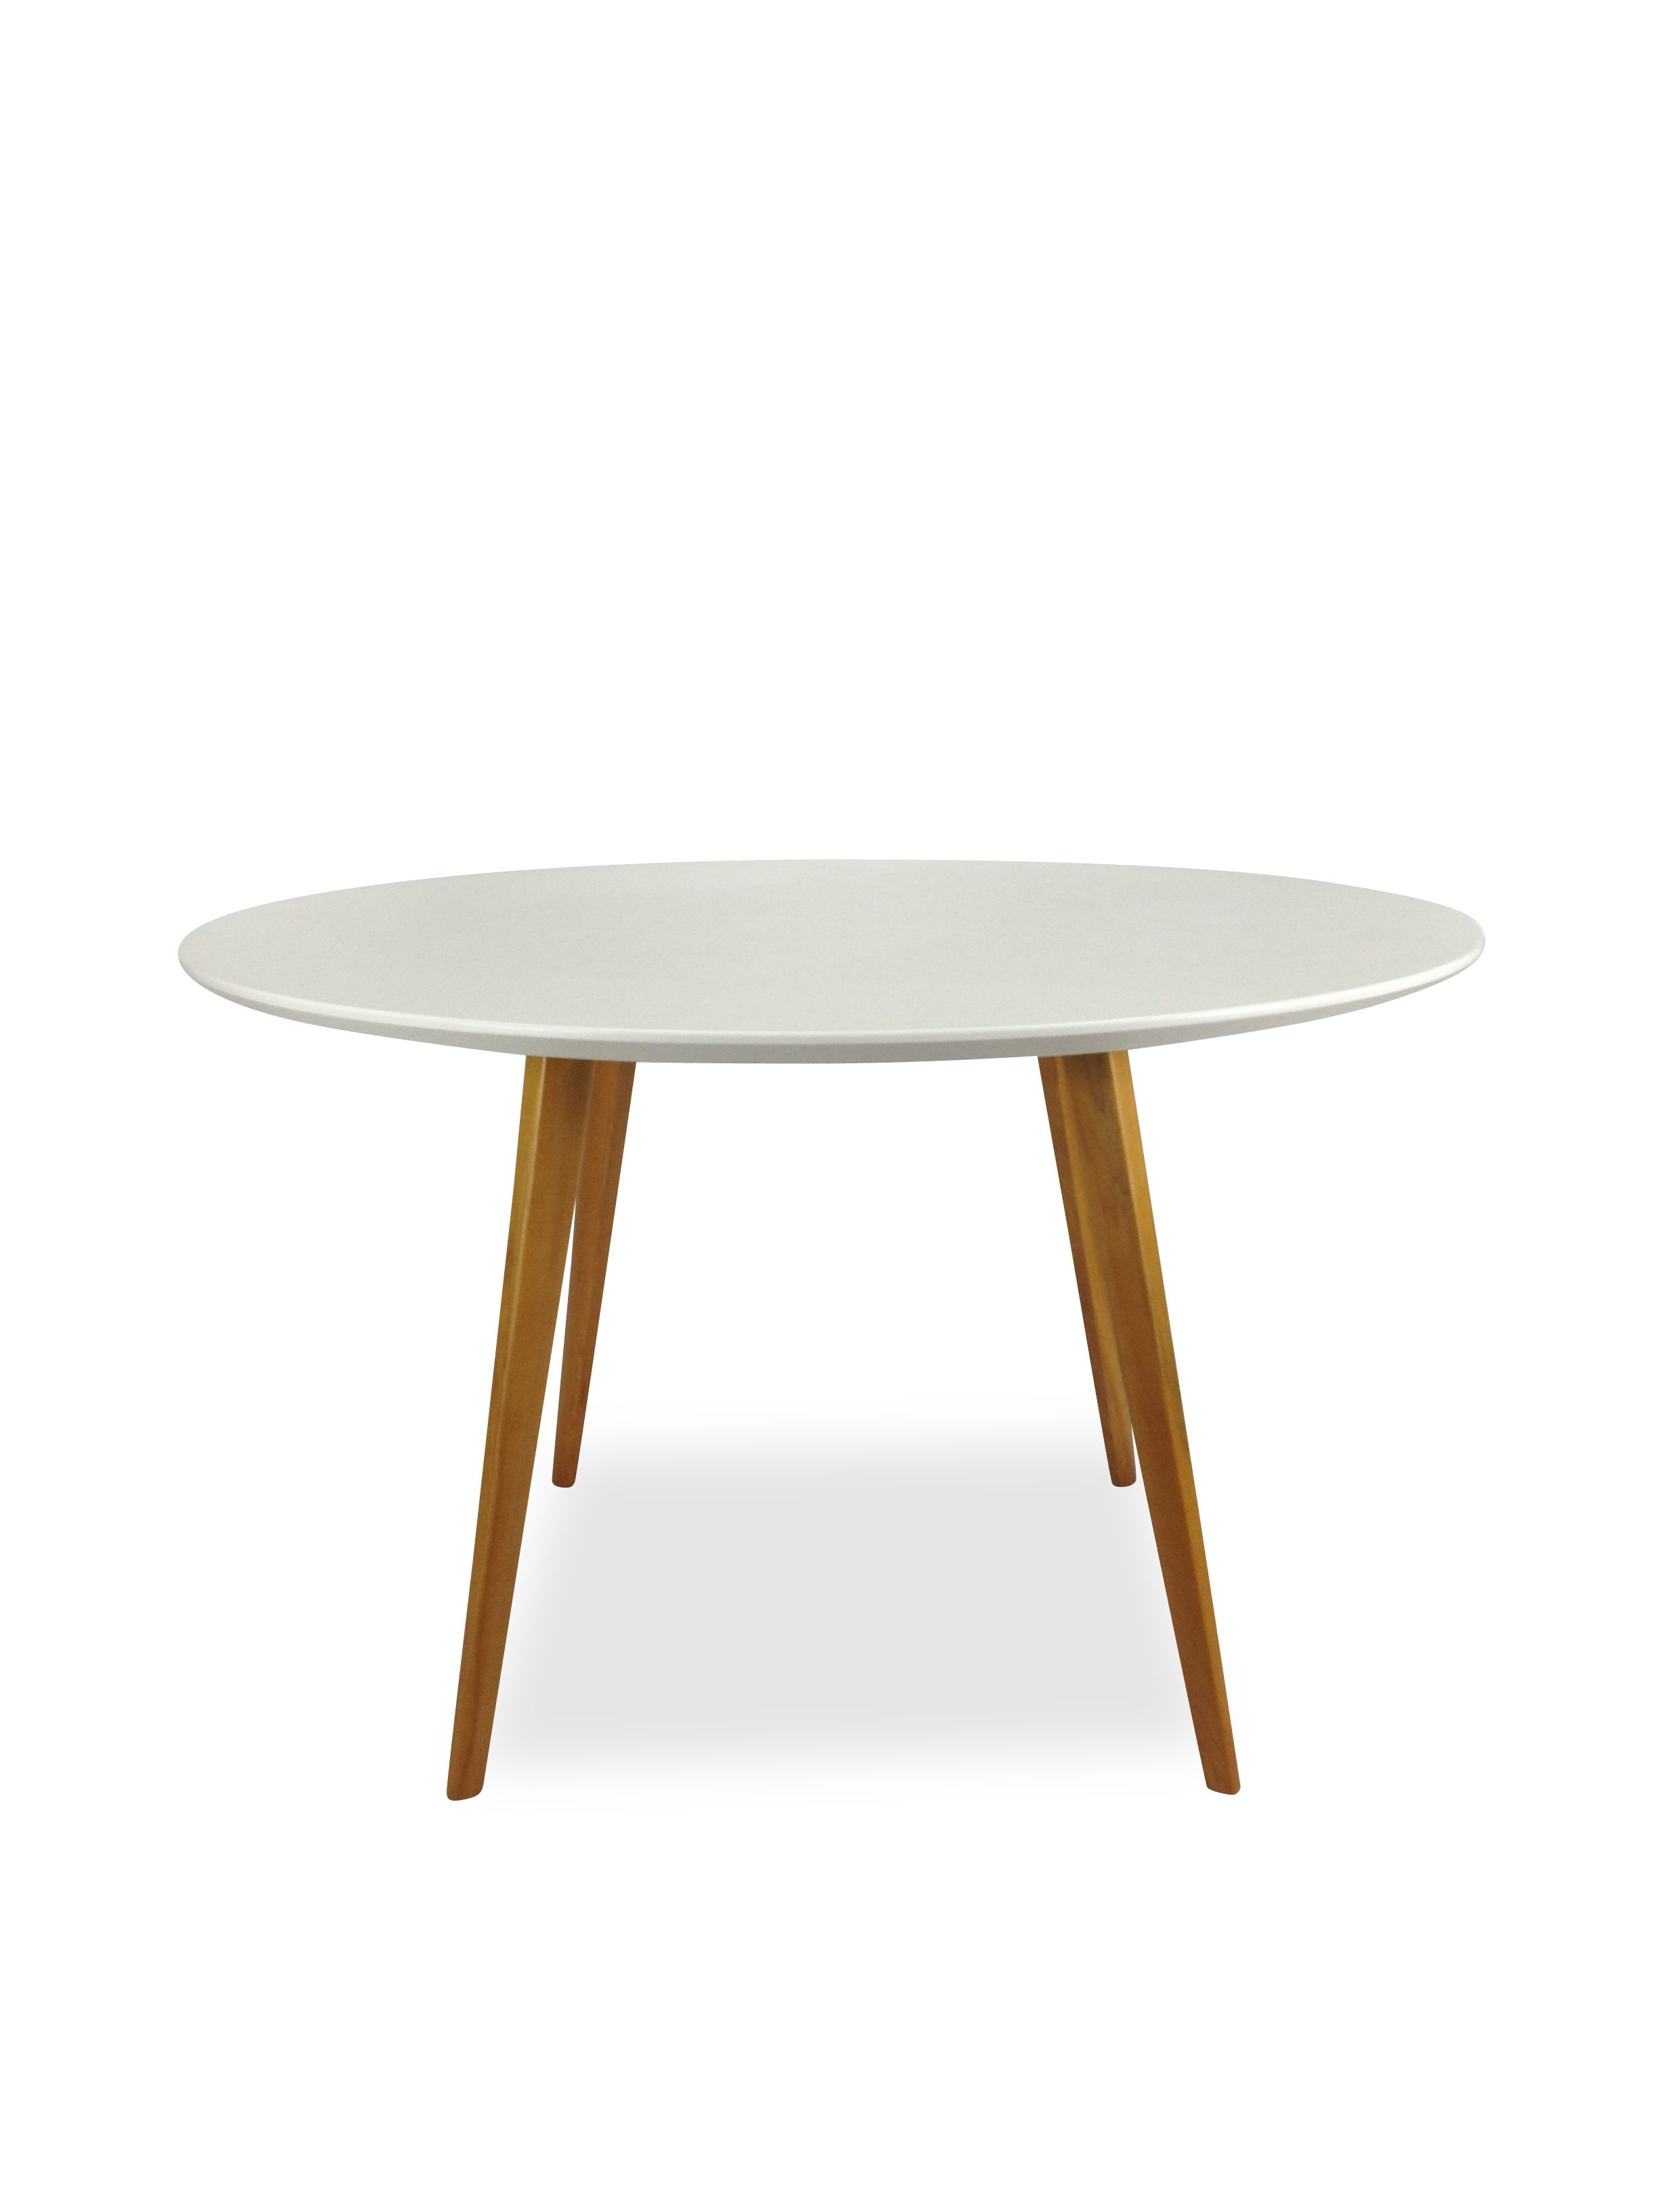 Halo Round Dining Table Mario Cellini Replica White Walnut Legs Round Dining Table Round Dining Dining Table [ 3264 x 2448 Pixel ]